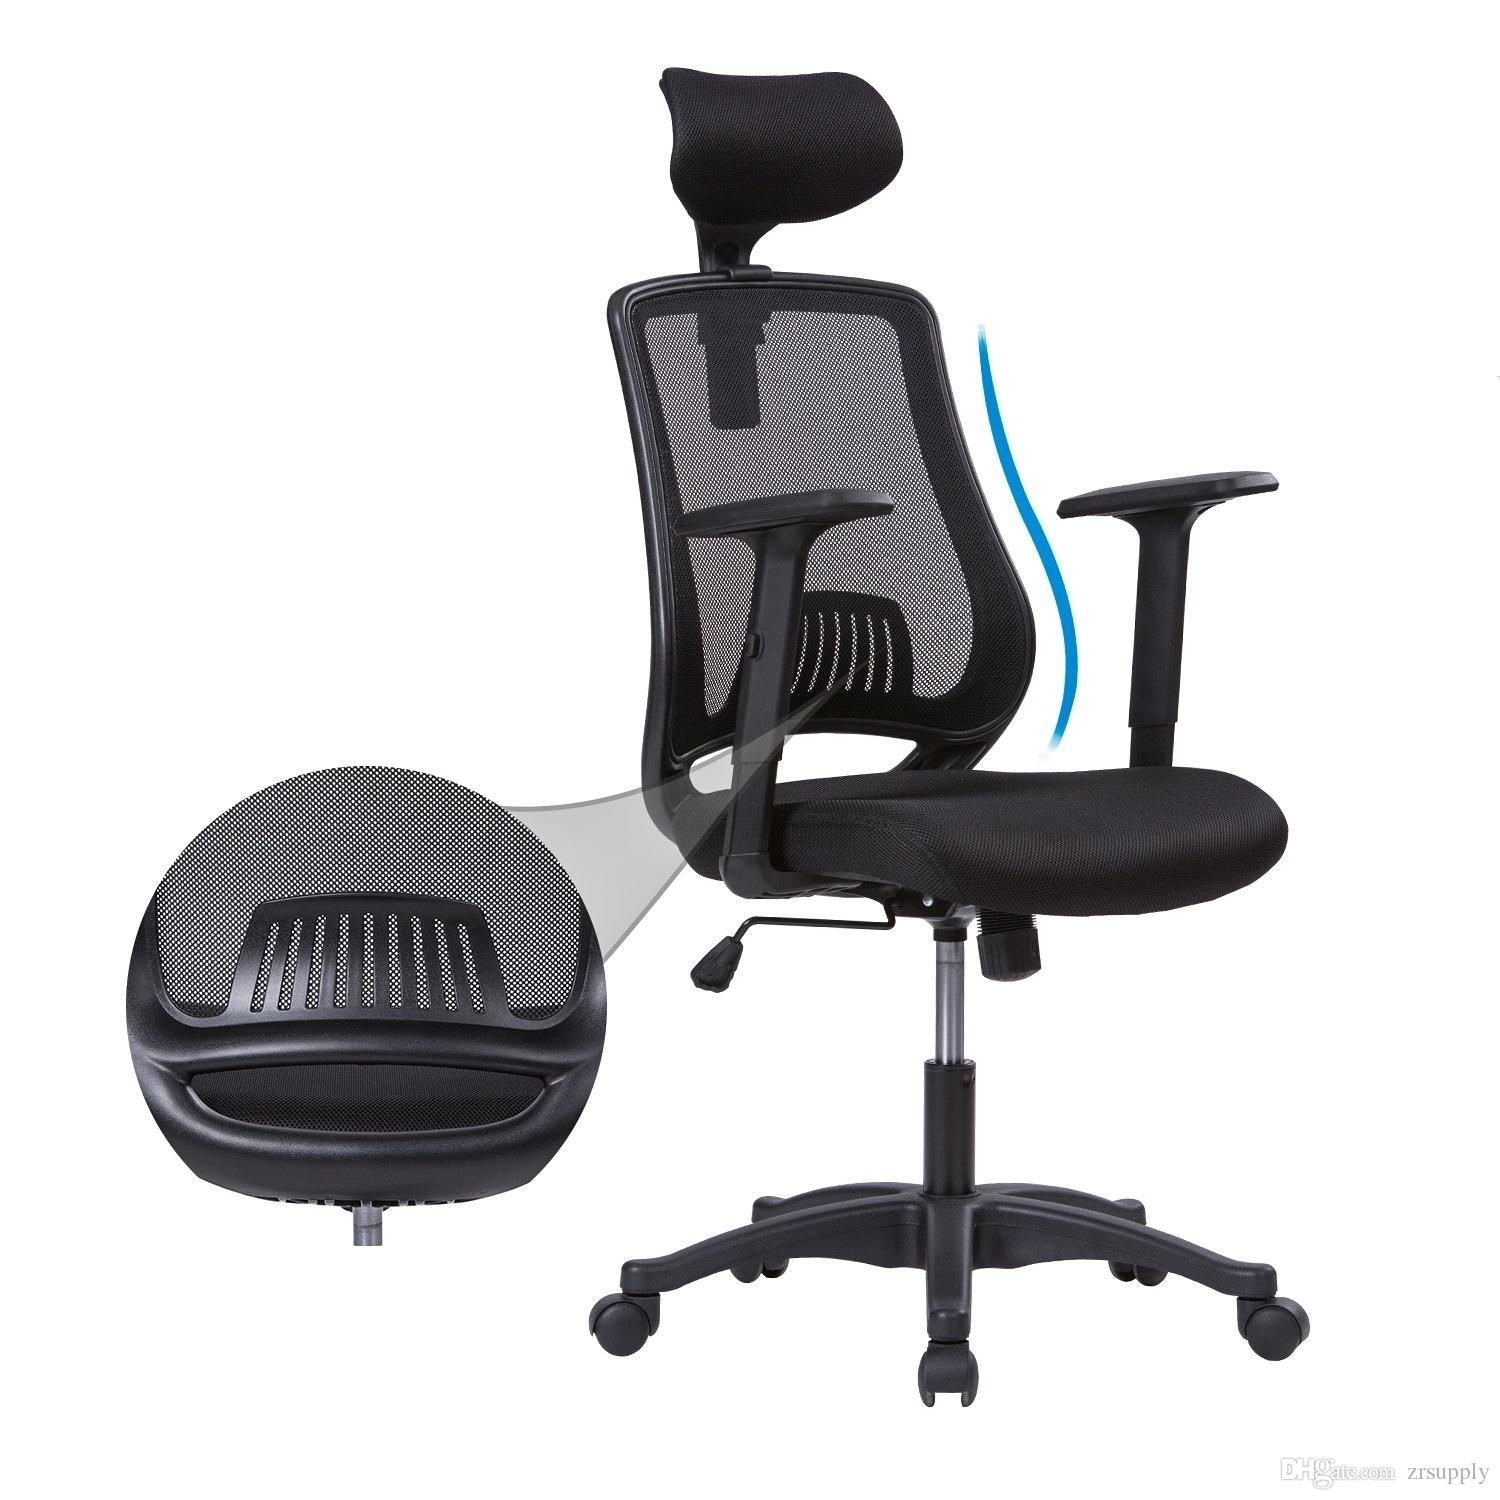 2019 High Back Mesh Office Chair Adjustable Armrests Headrest Breathable Ergonomic Computer Chair Desk Task Executive Chair Back Lumbar Support From